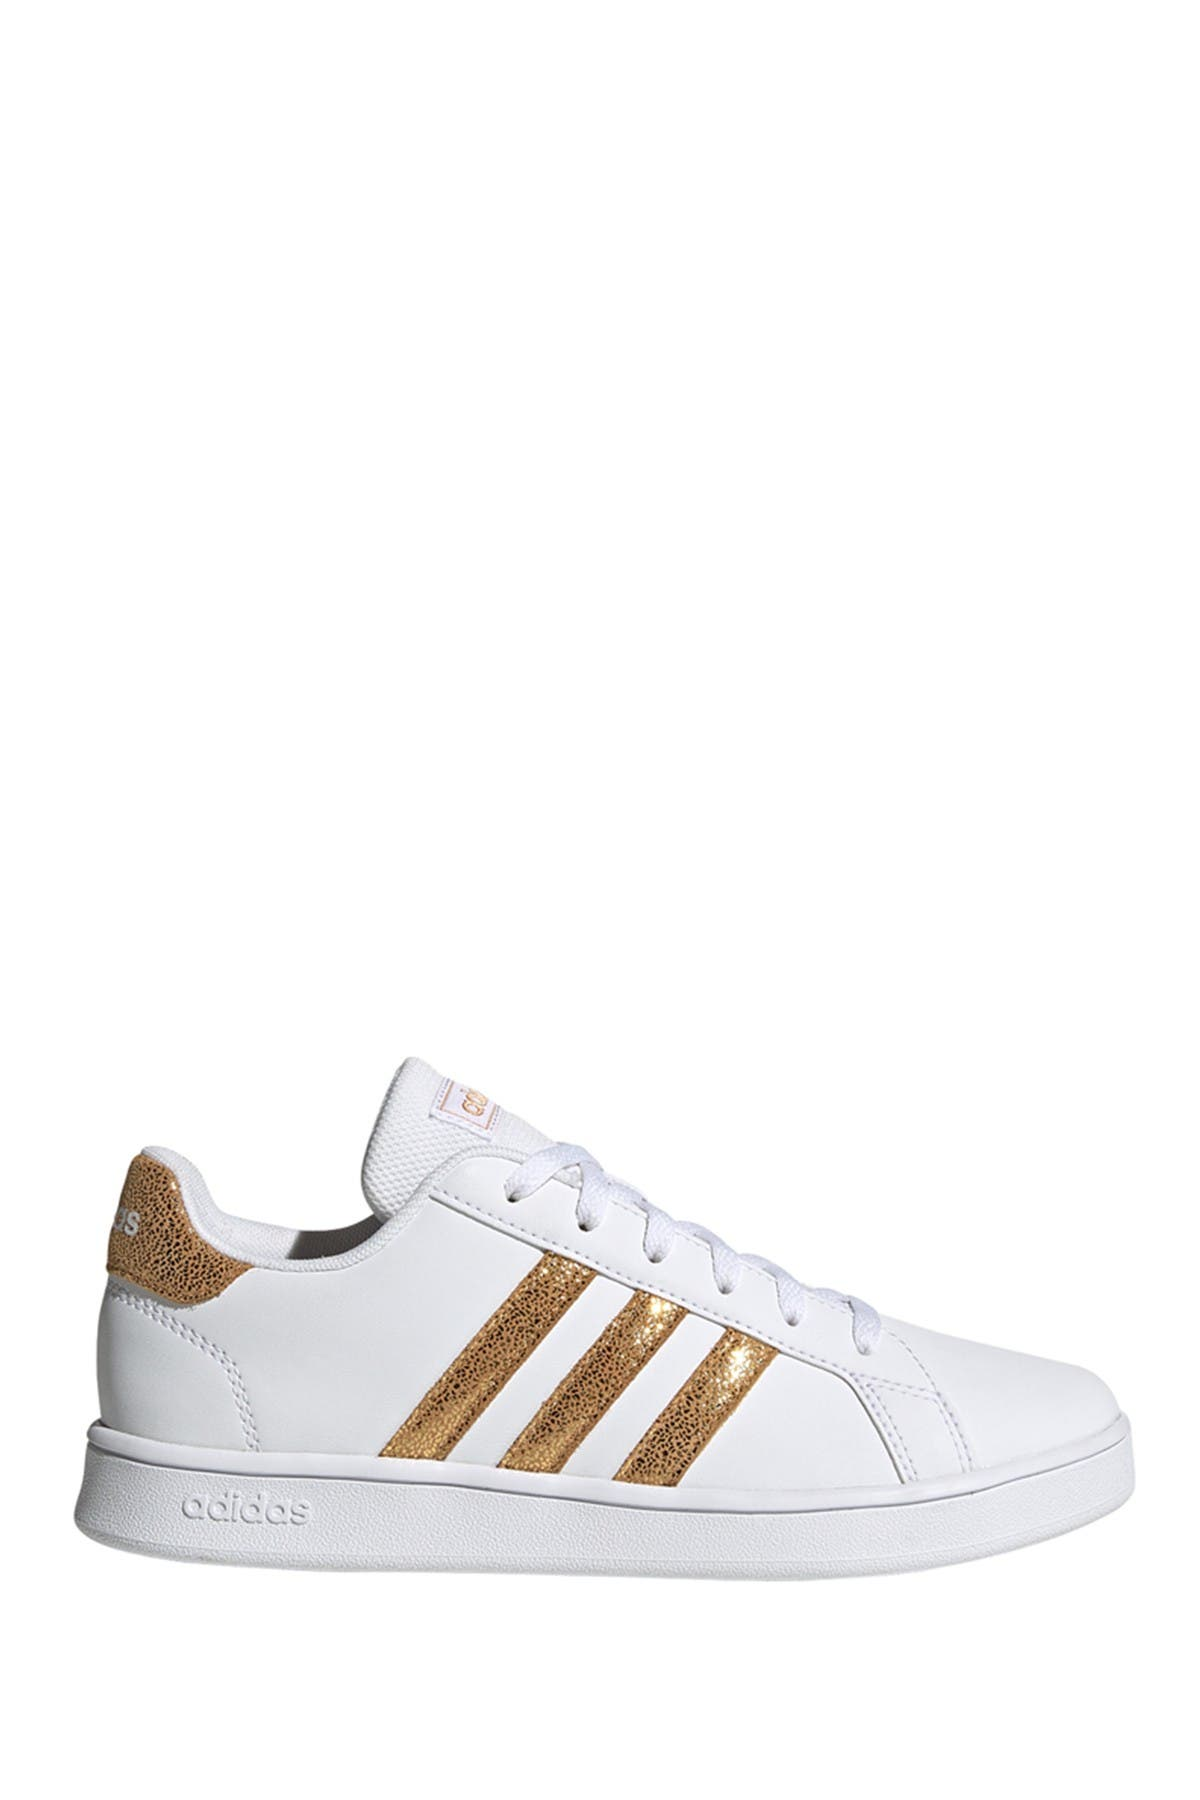 Image of adidas Grand Court Sneaker